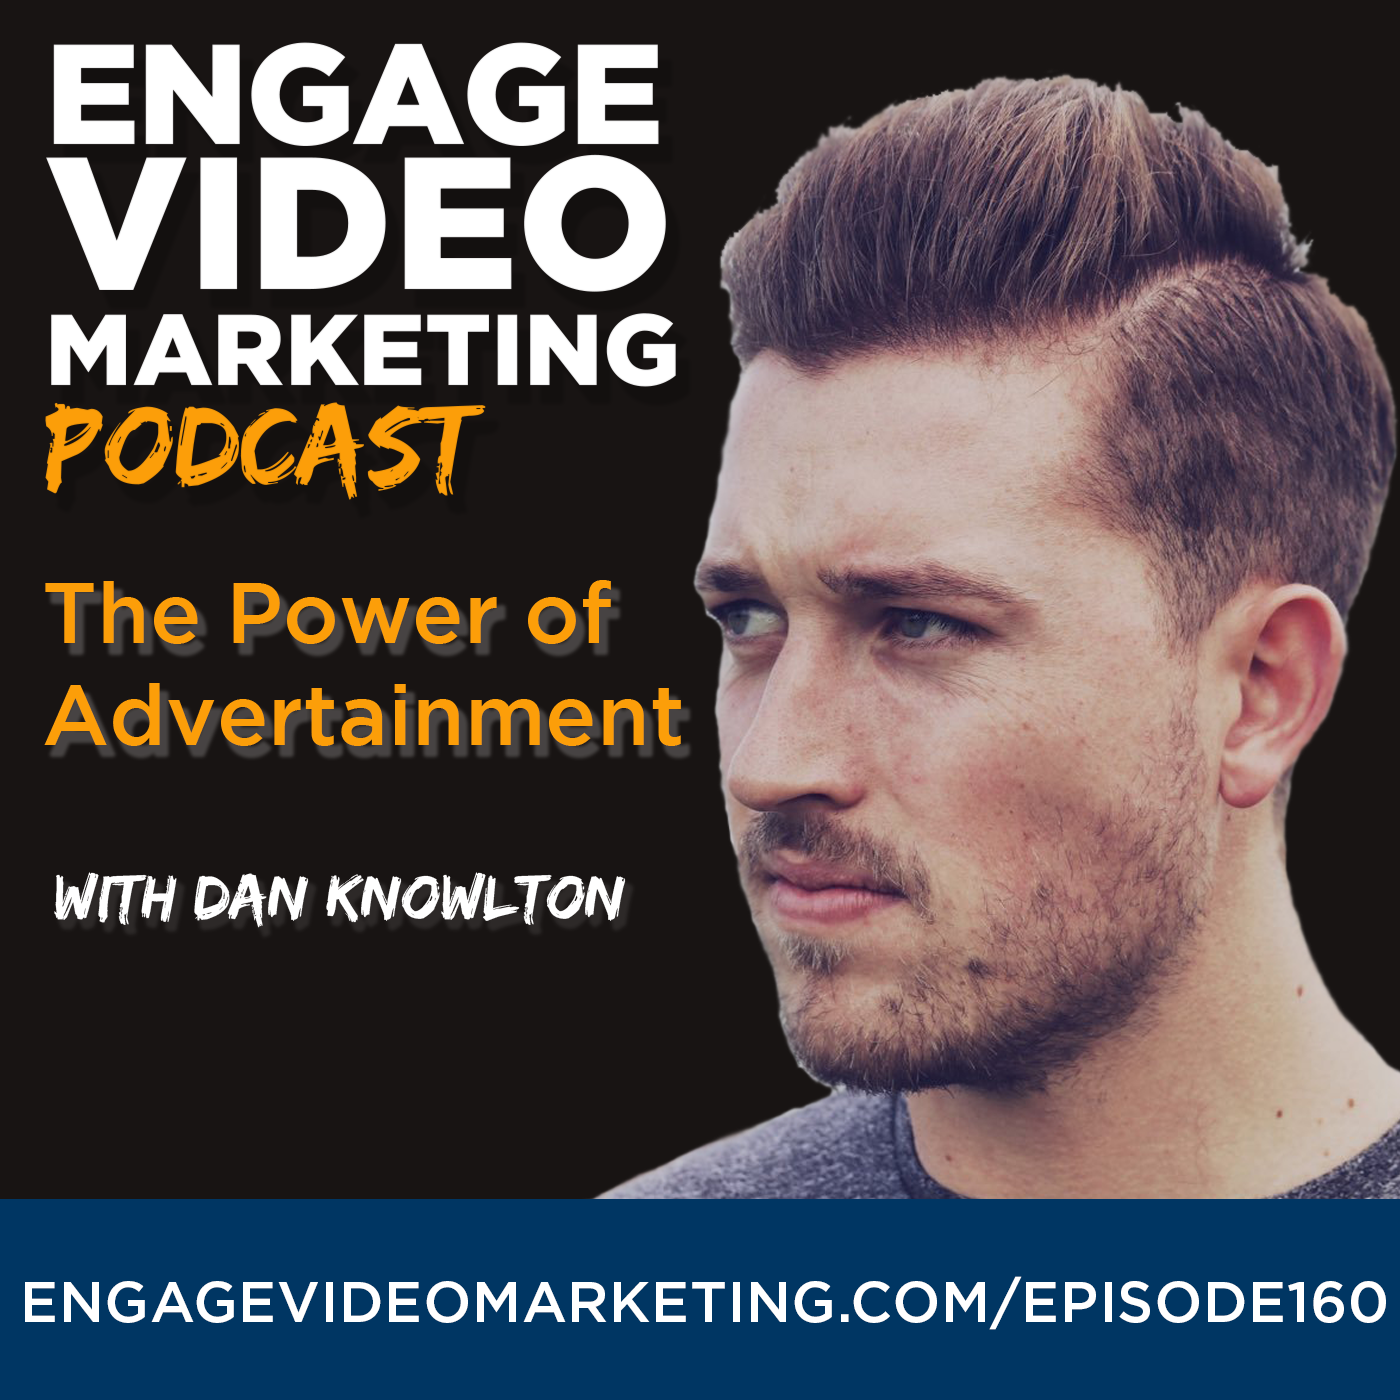 The Power of Advertainment with Dan Knowlton